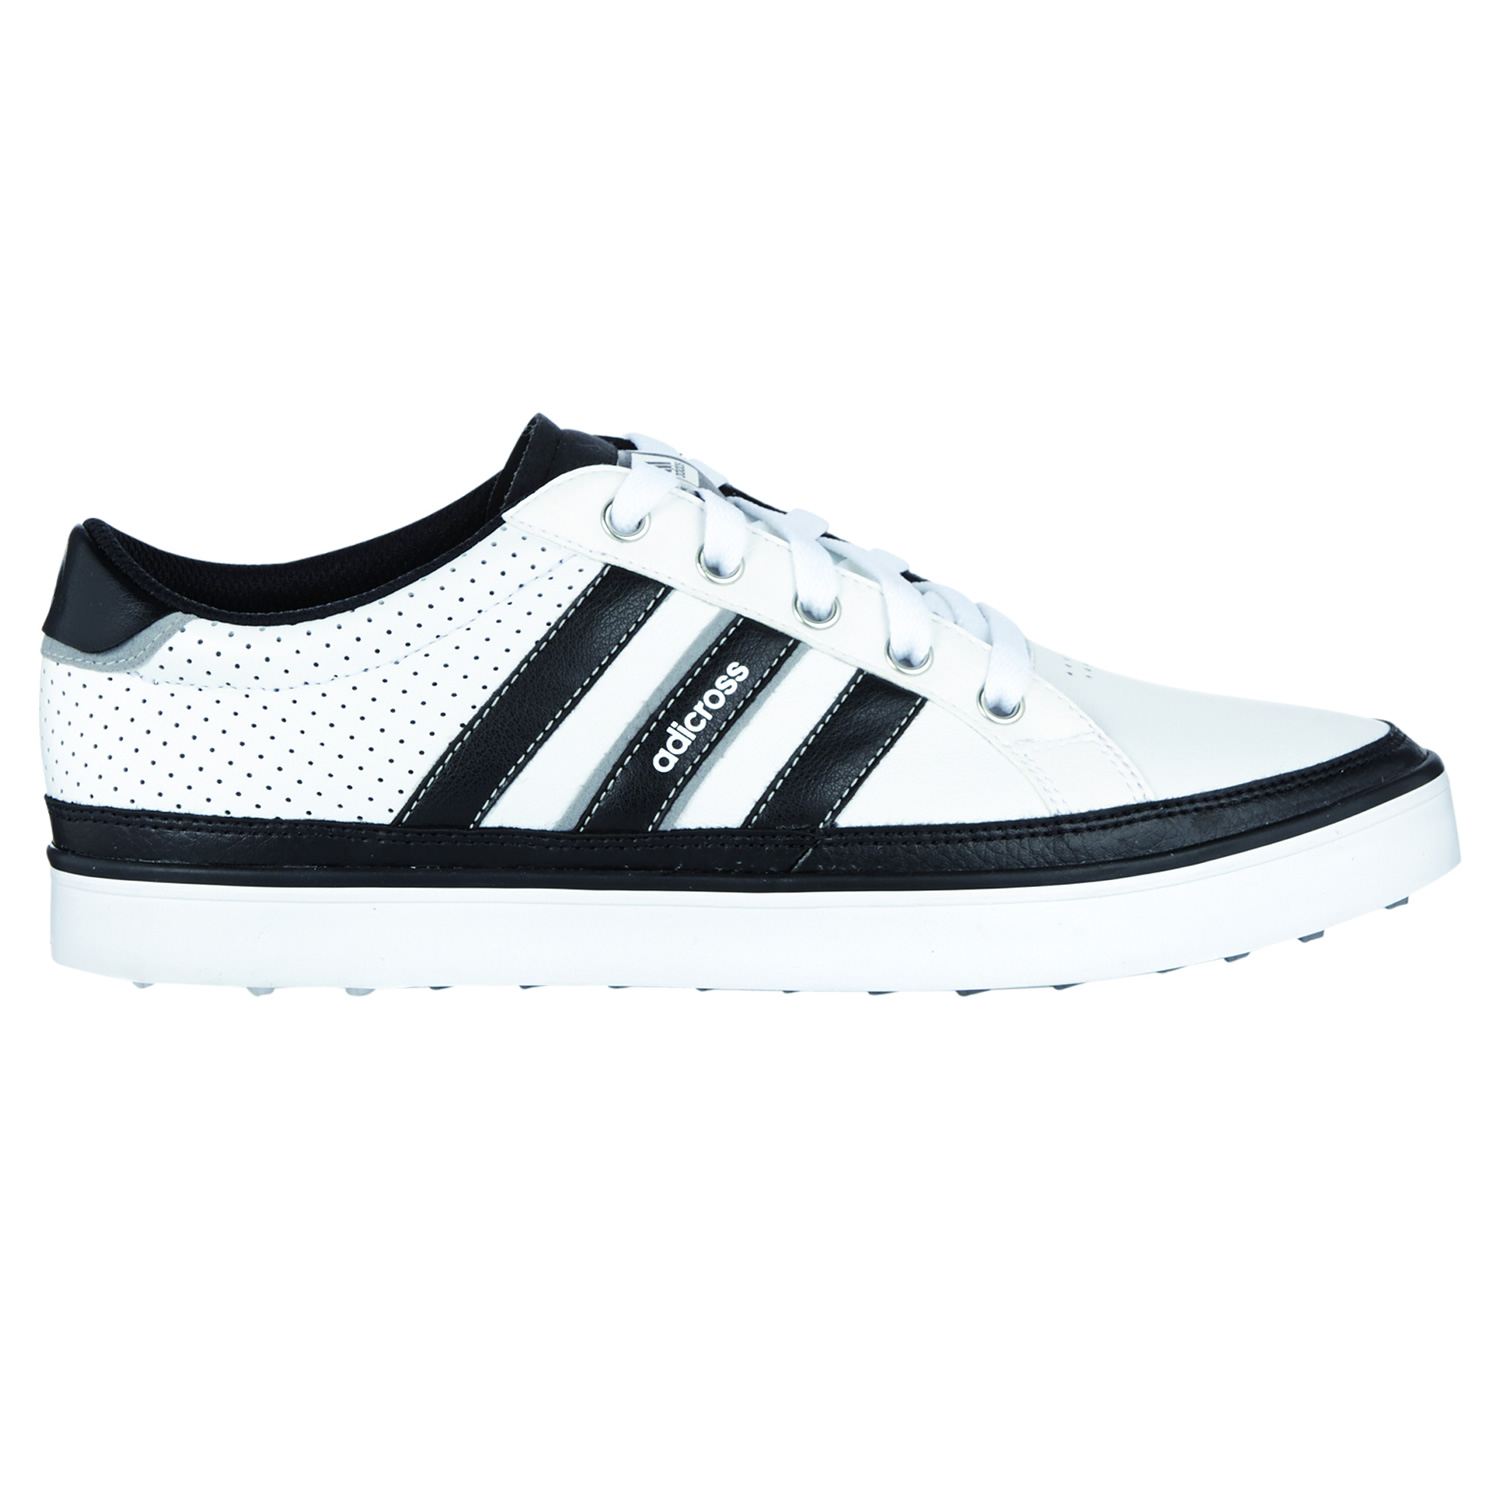 Adidas Cross Shoes